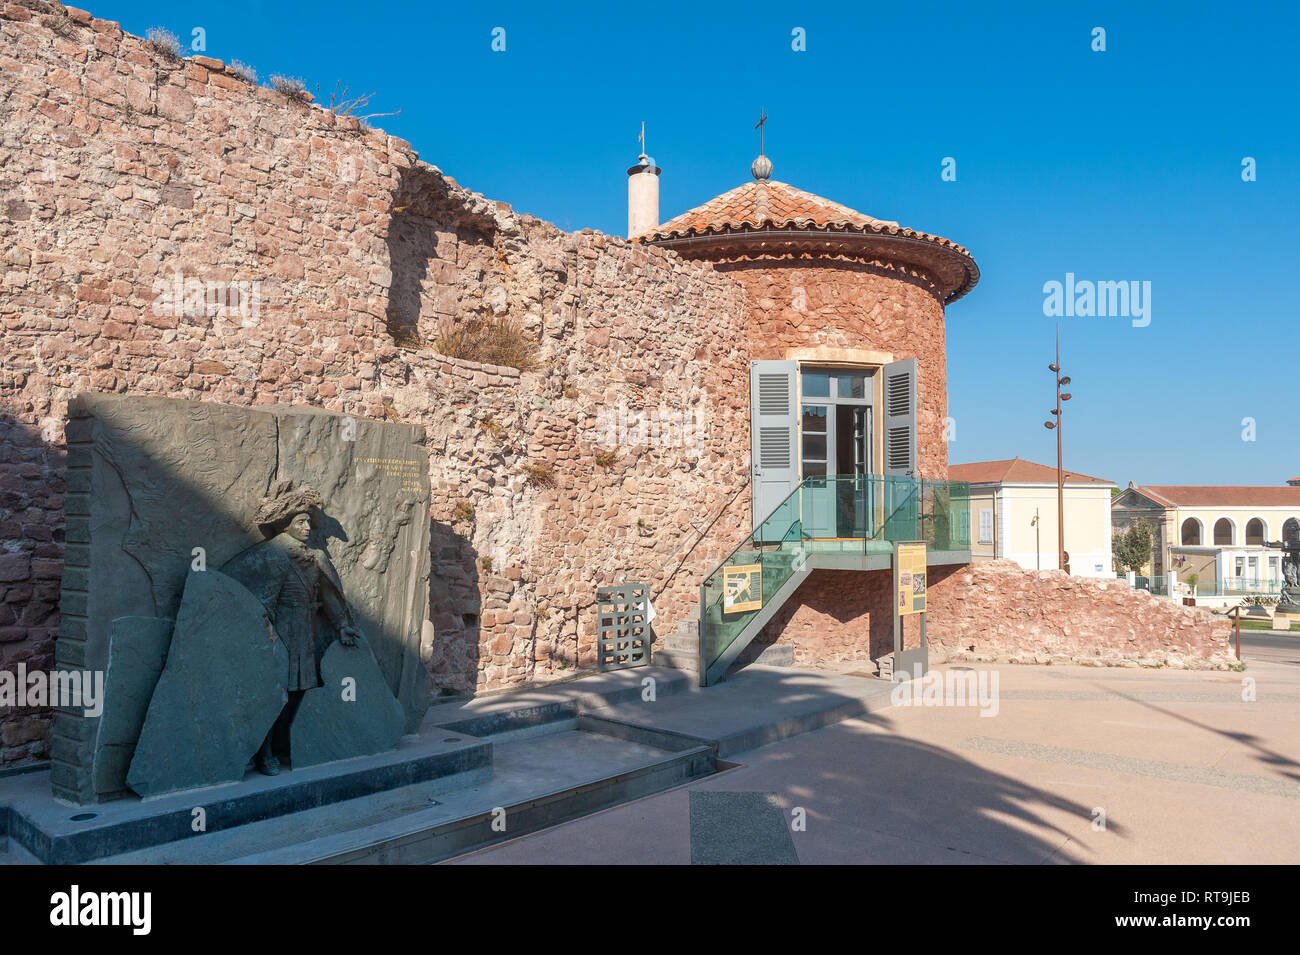 Historic city wall at Place Clemenceau, Frejus, Var, Provence-Alpes-Cote d`Azur, France, Europe - Stock Image